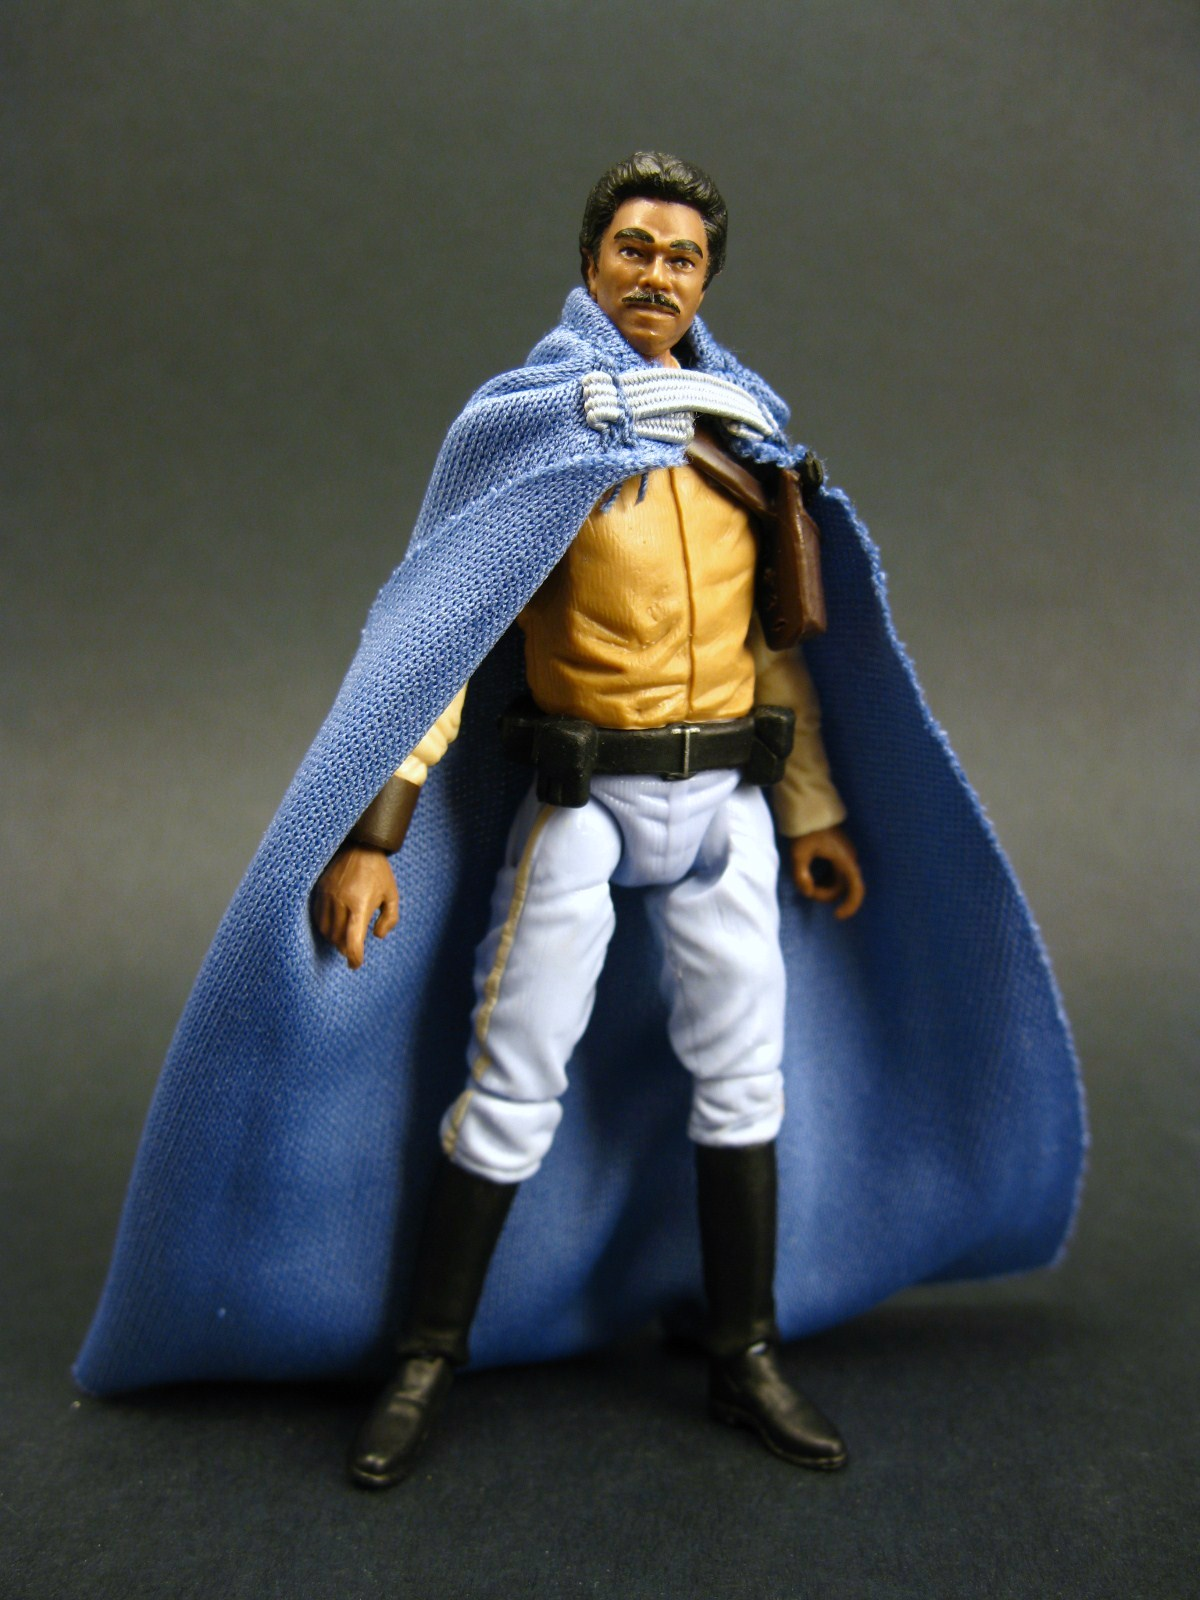 cdcc5f36 Like: He's the ideal Lando, the